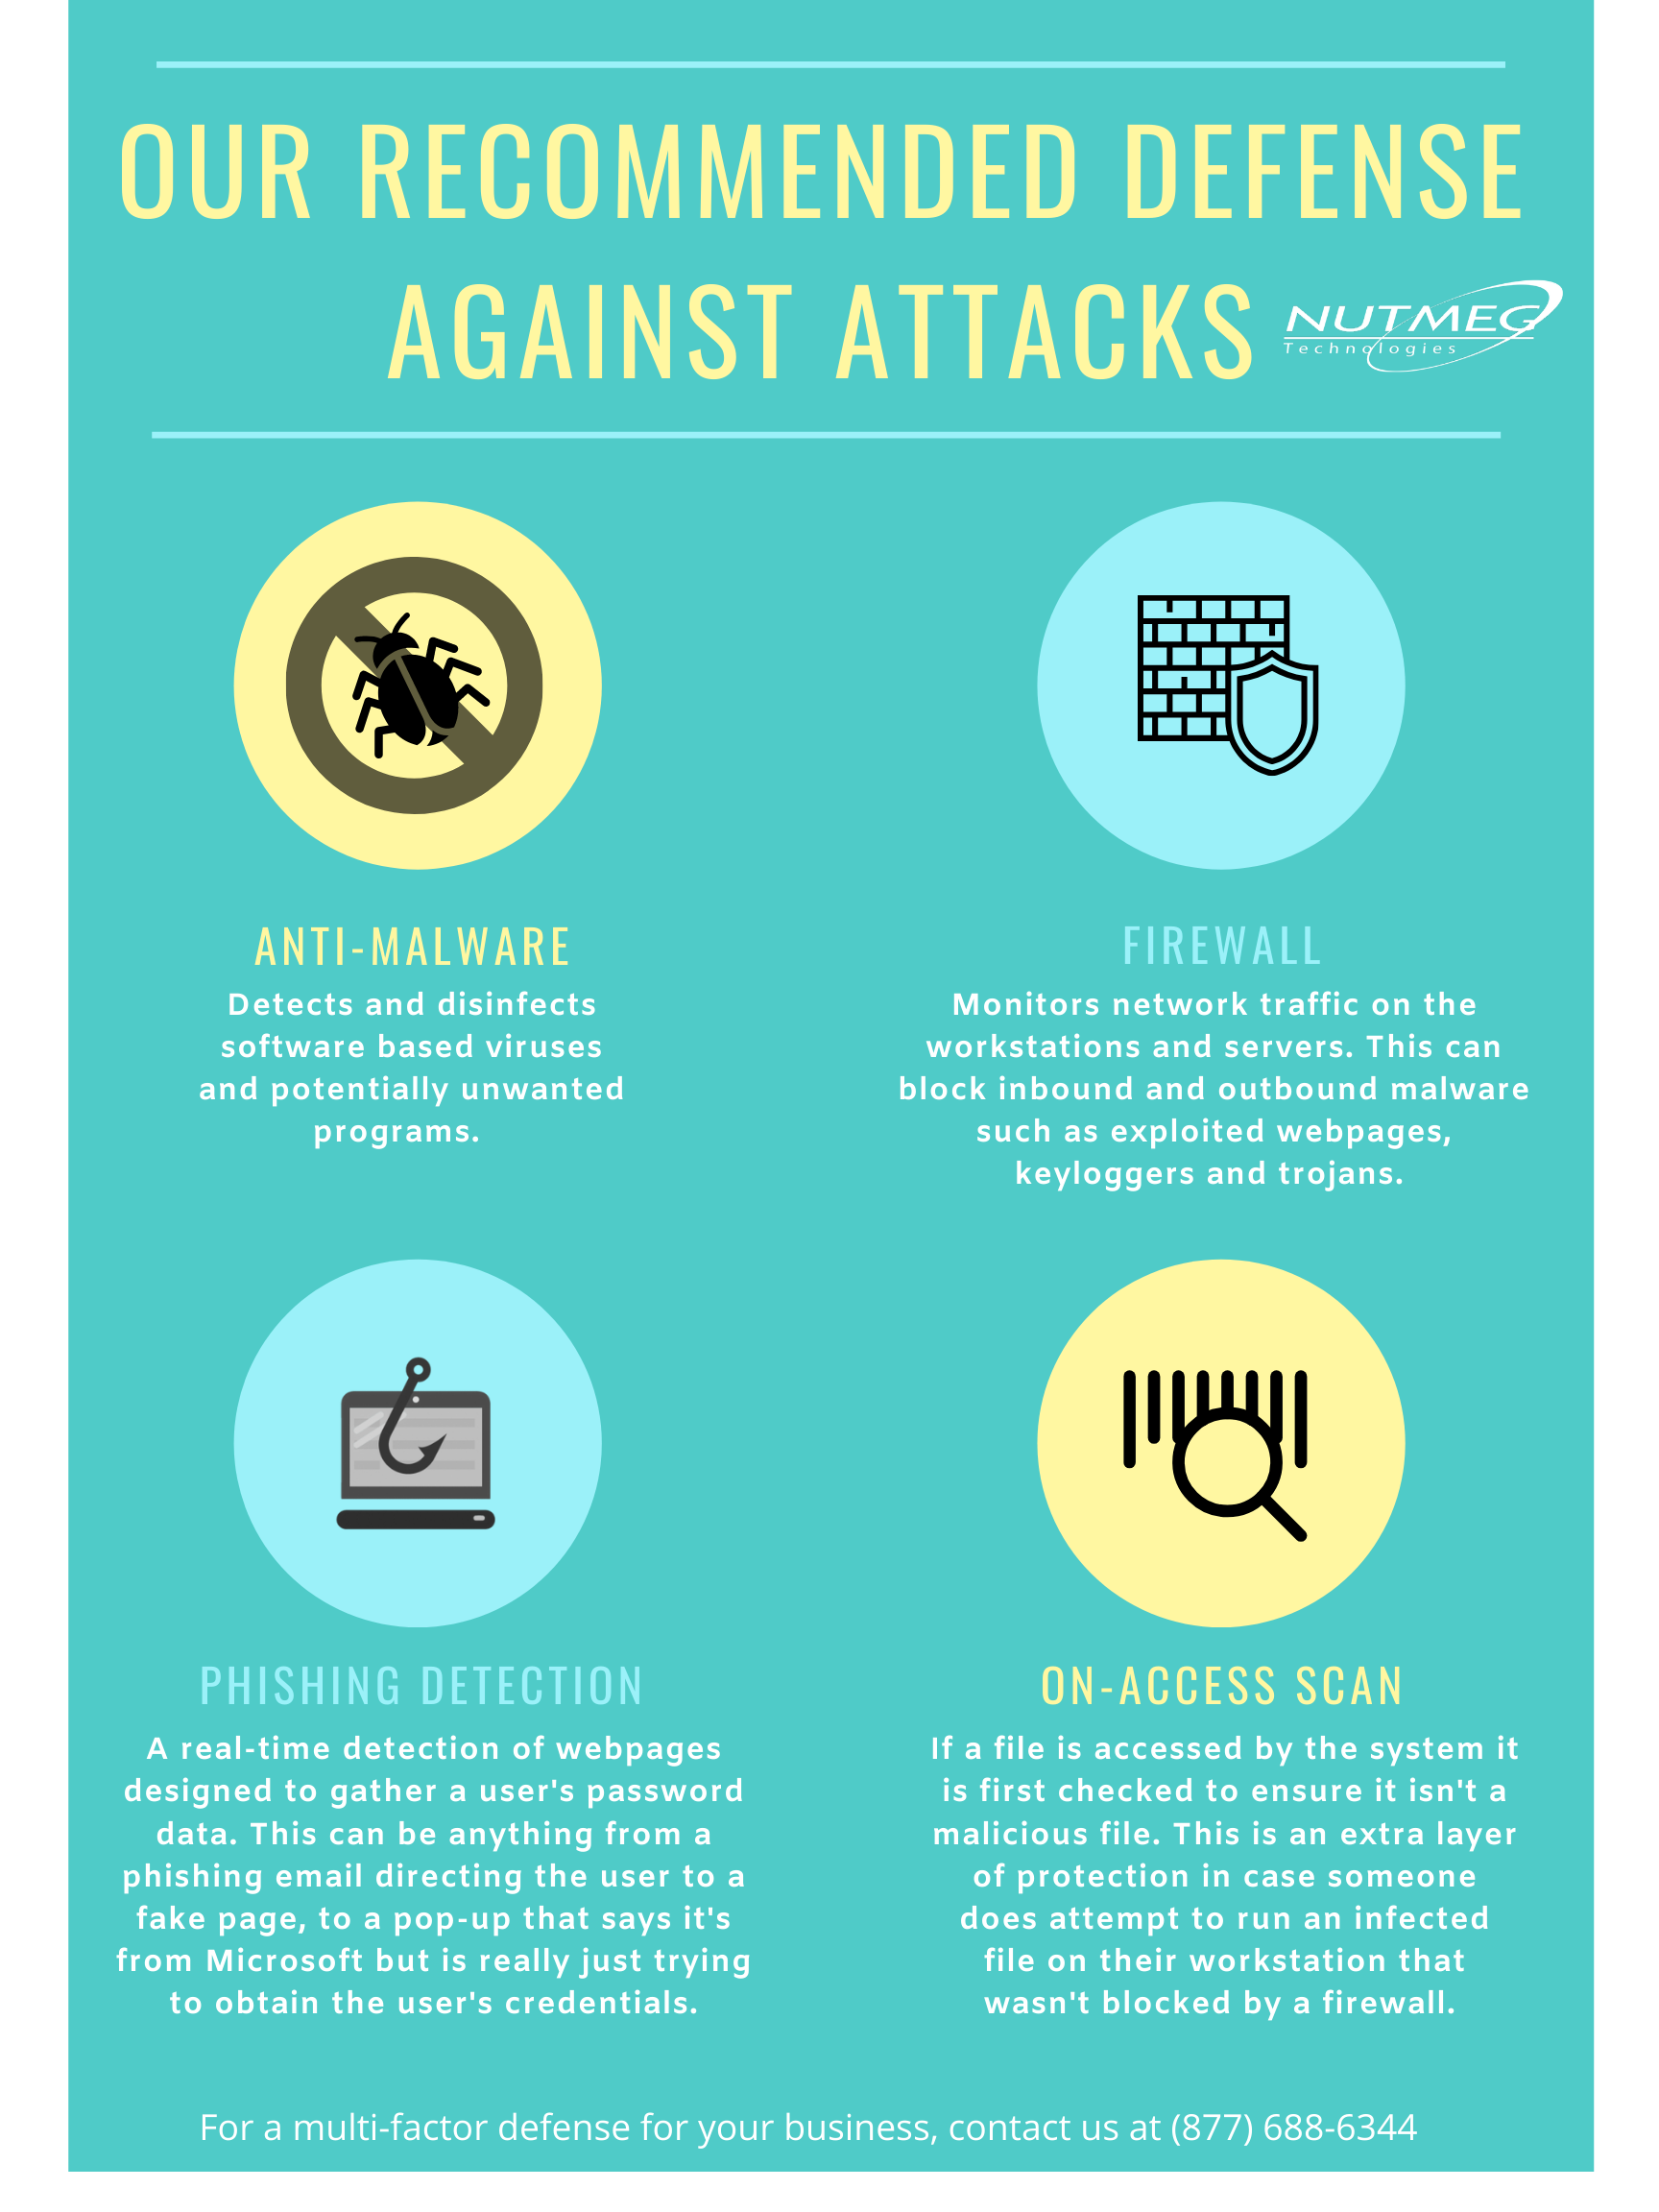 Our recommended defense against attacks: anti-malware, firewall, phishing detection, on-access scan